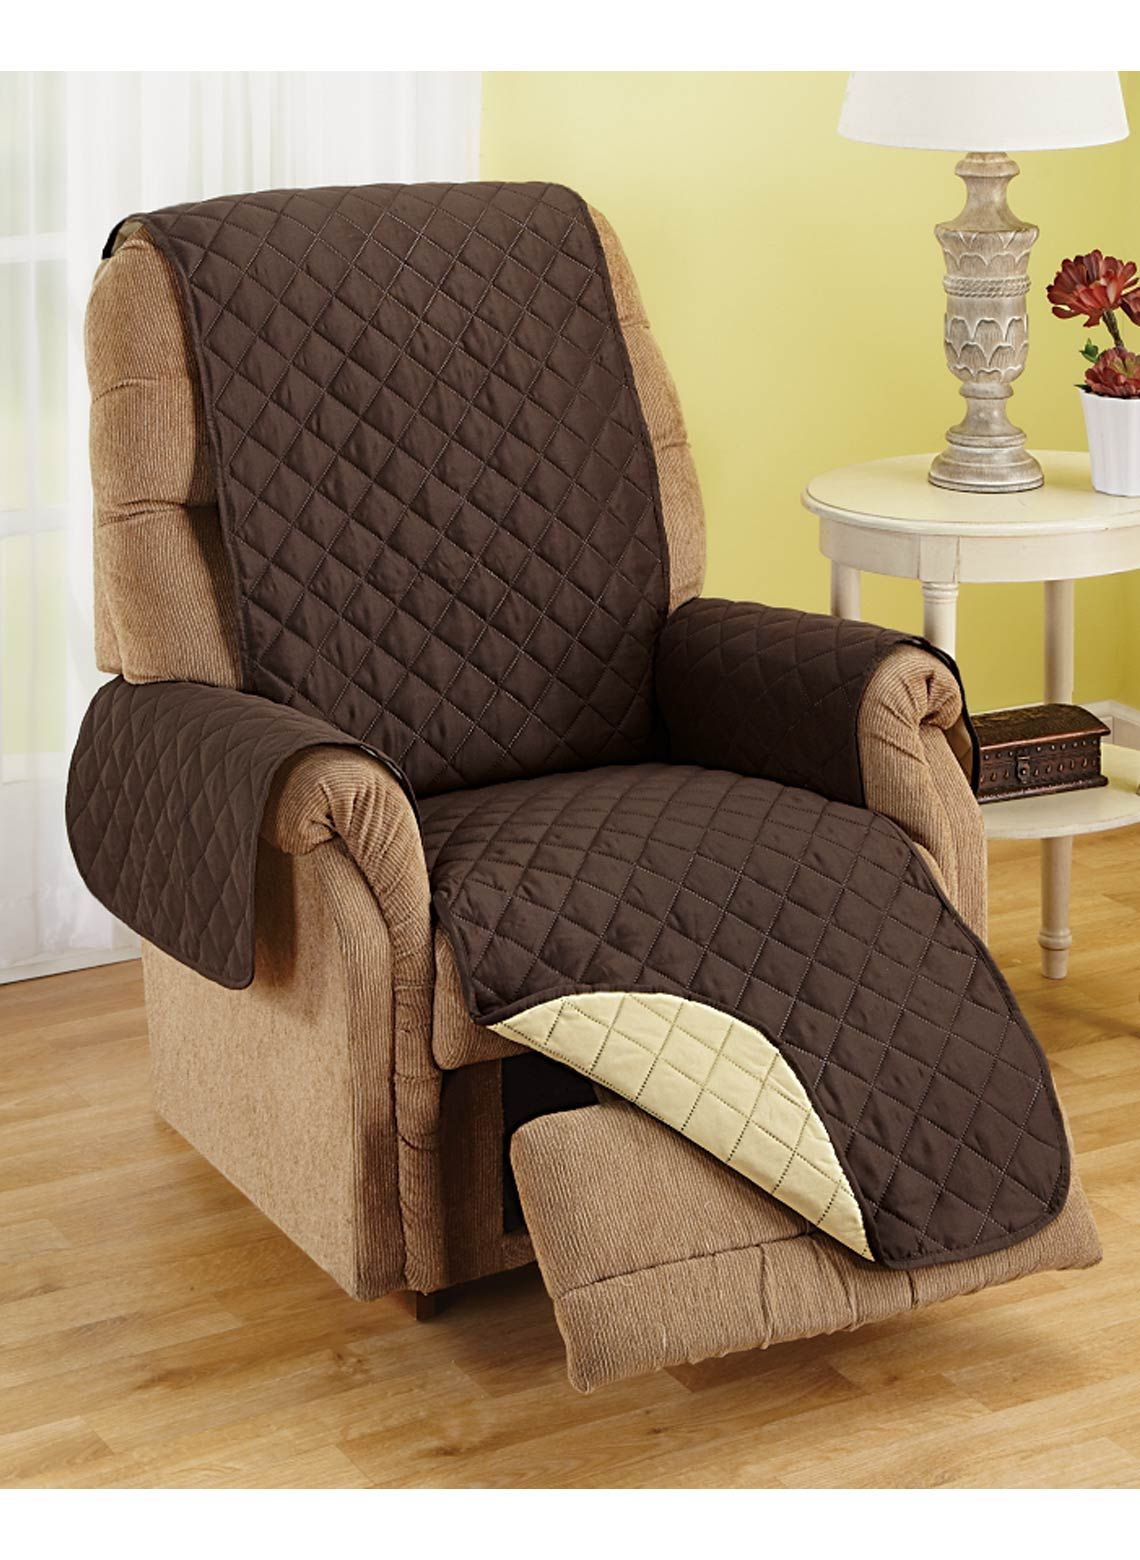 Reversible Furniture Covers Recliner Cover Recliner Chair Covers Furniture Covers